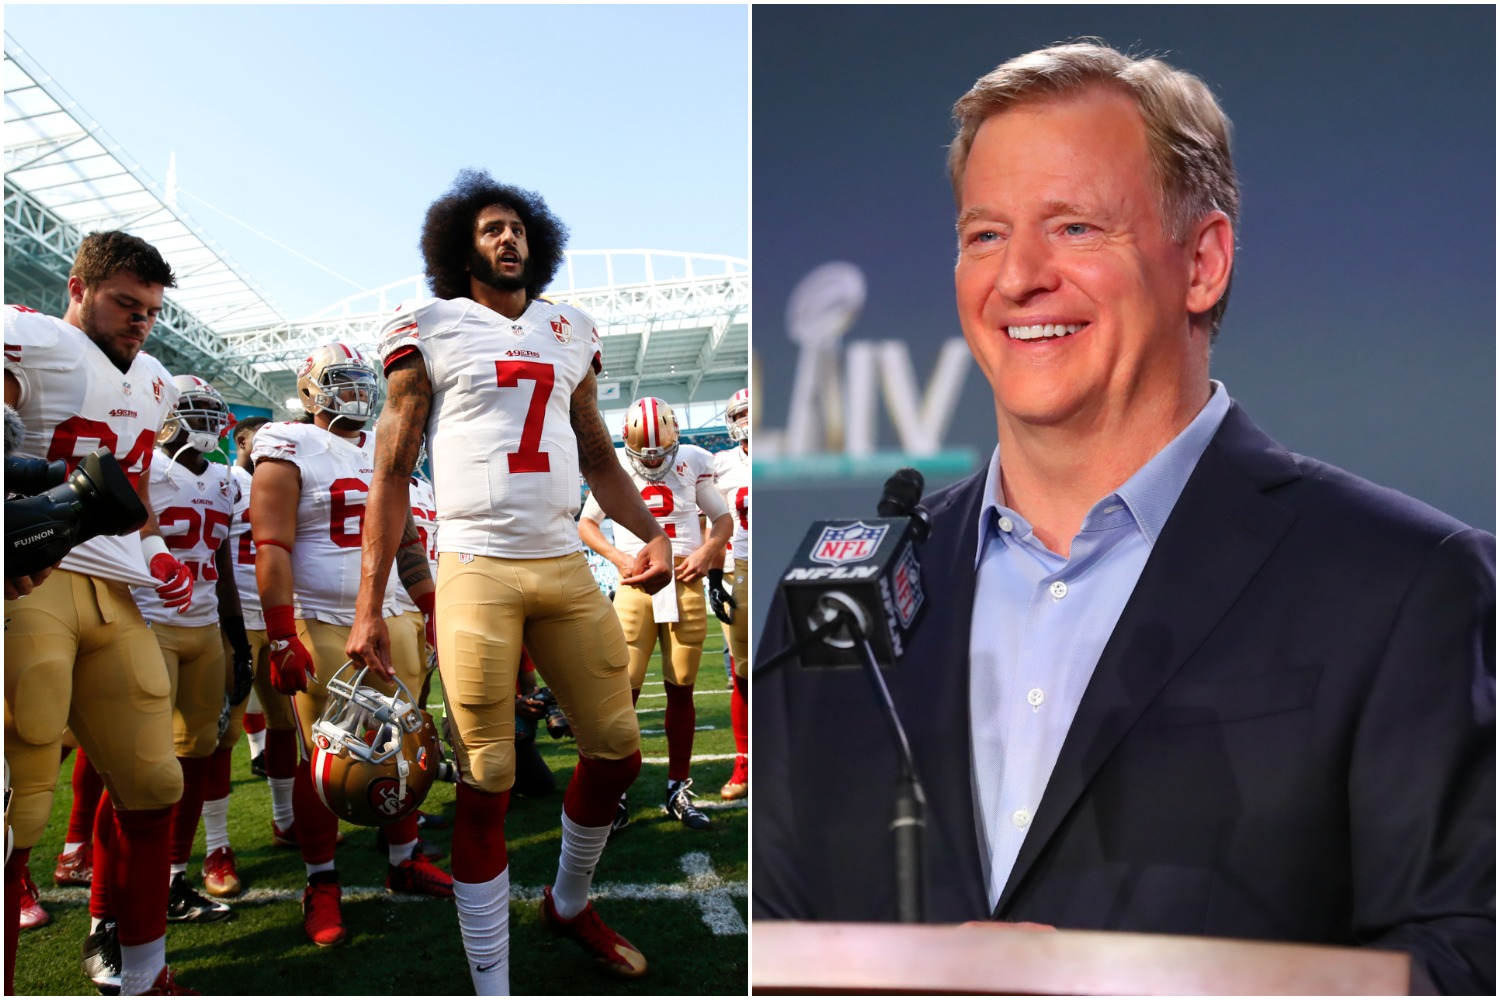 Roger Goodell just admitted his true feelings about Colin Kaepernick, who has not played in the NFL since 2016.